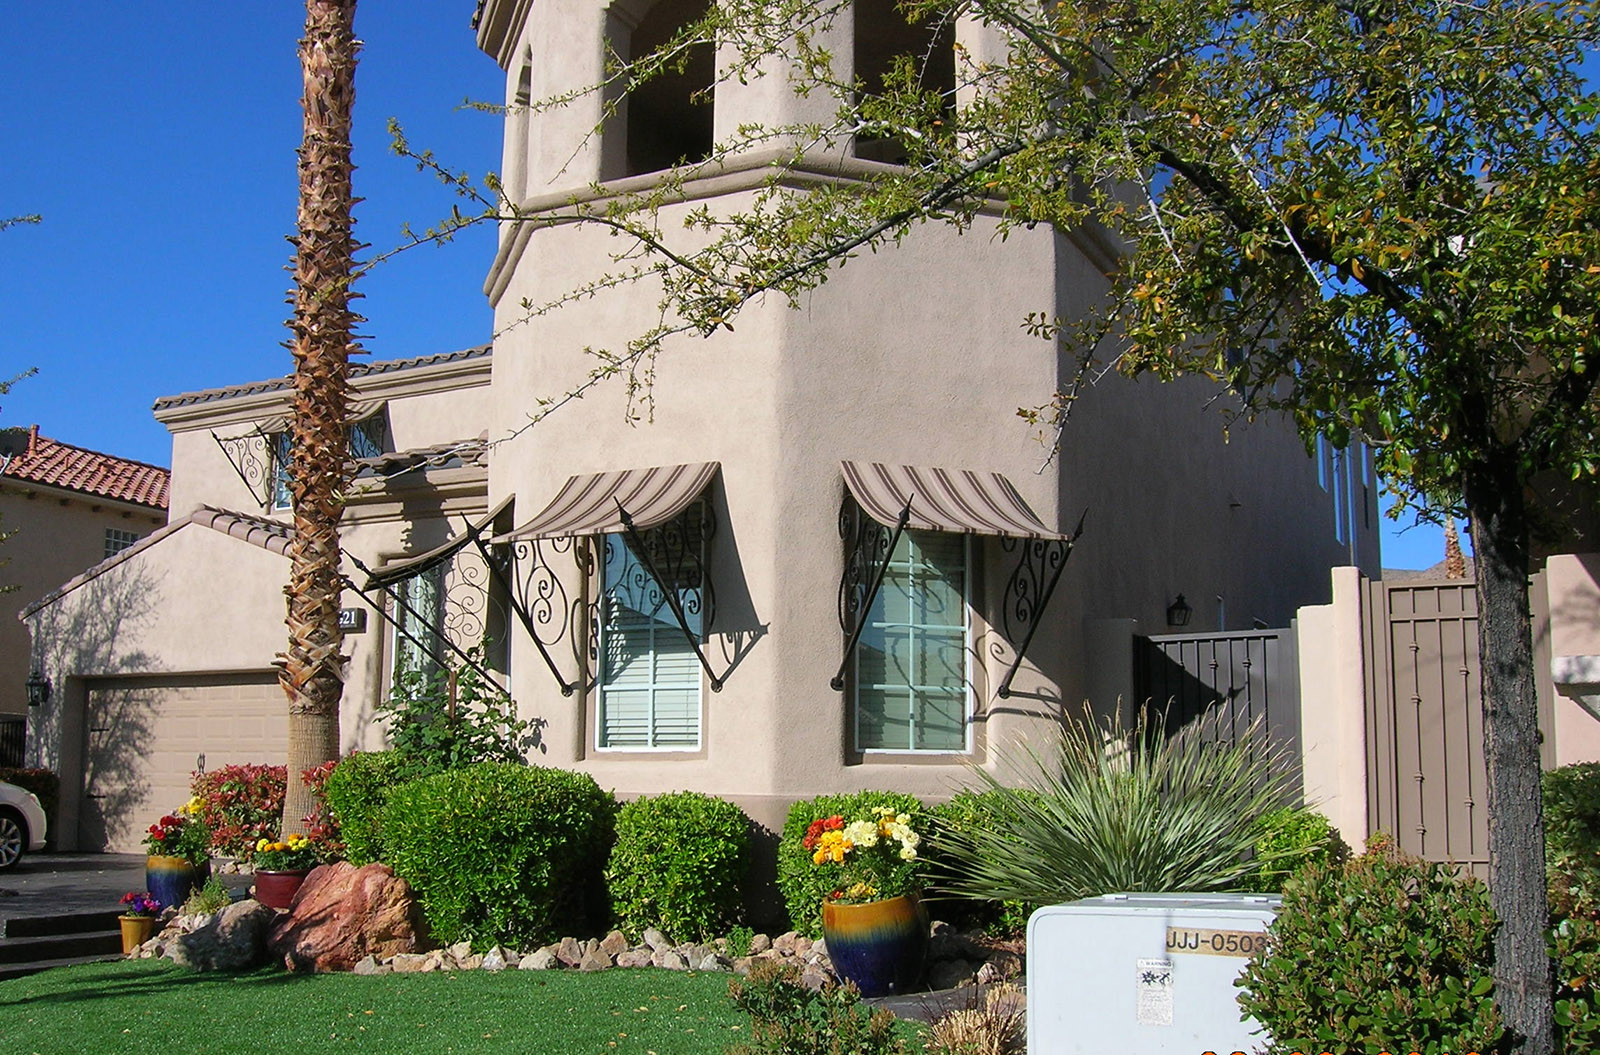 Residential Awning Systems Fabricated in Las Vegas, Nevada - Metro Awnings